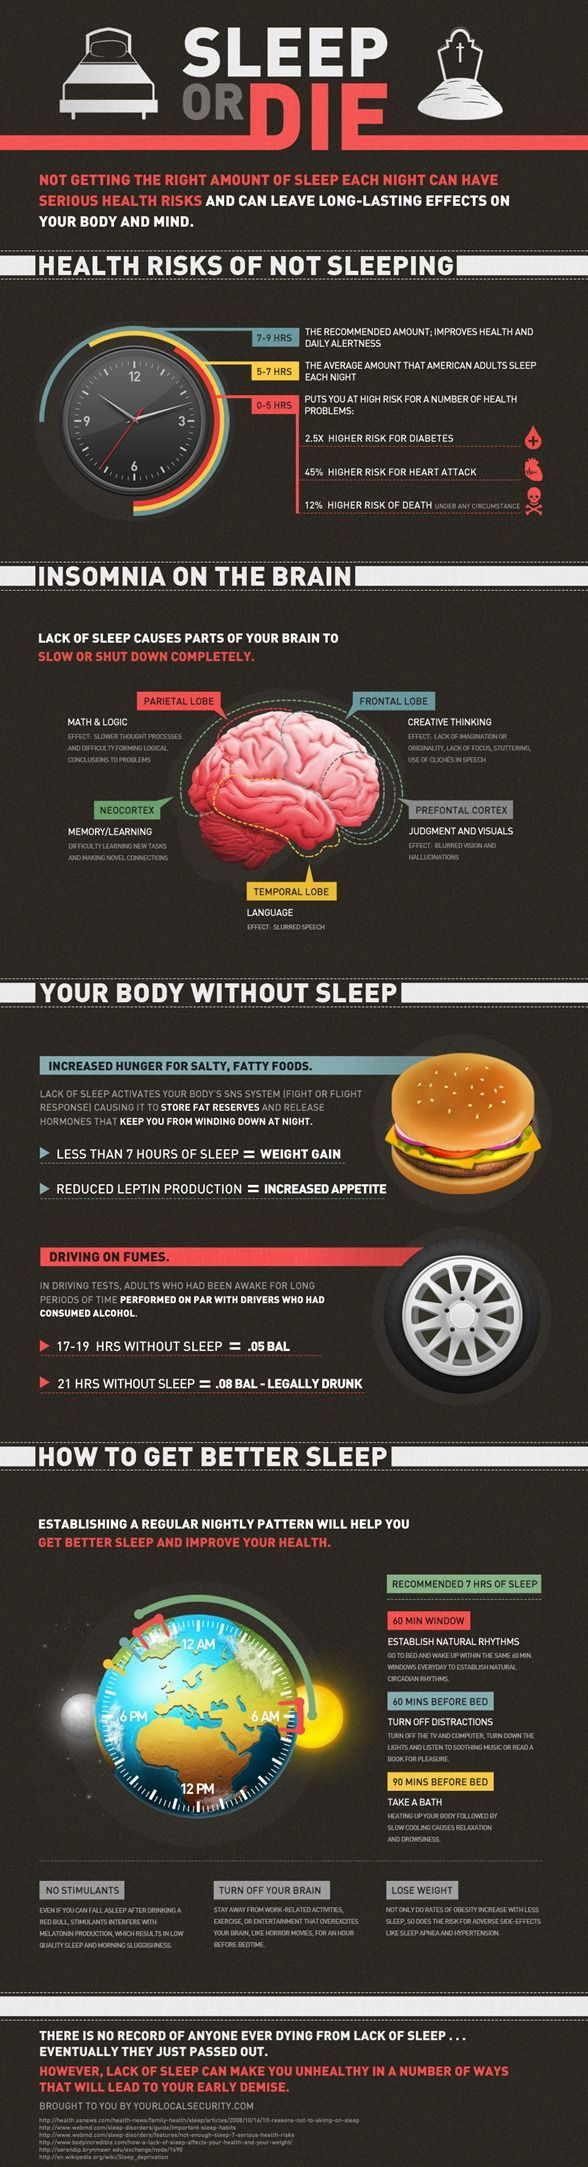 Do not underestimate the power of sleep!!  Shut off the phone and GO TO BED